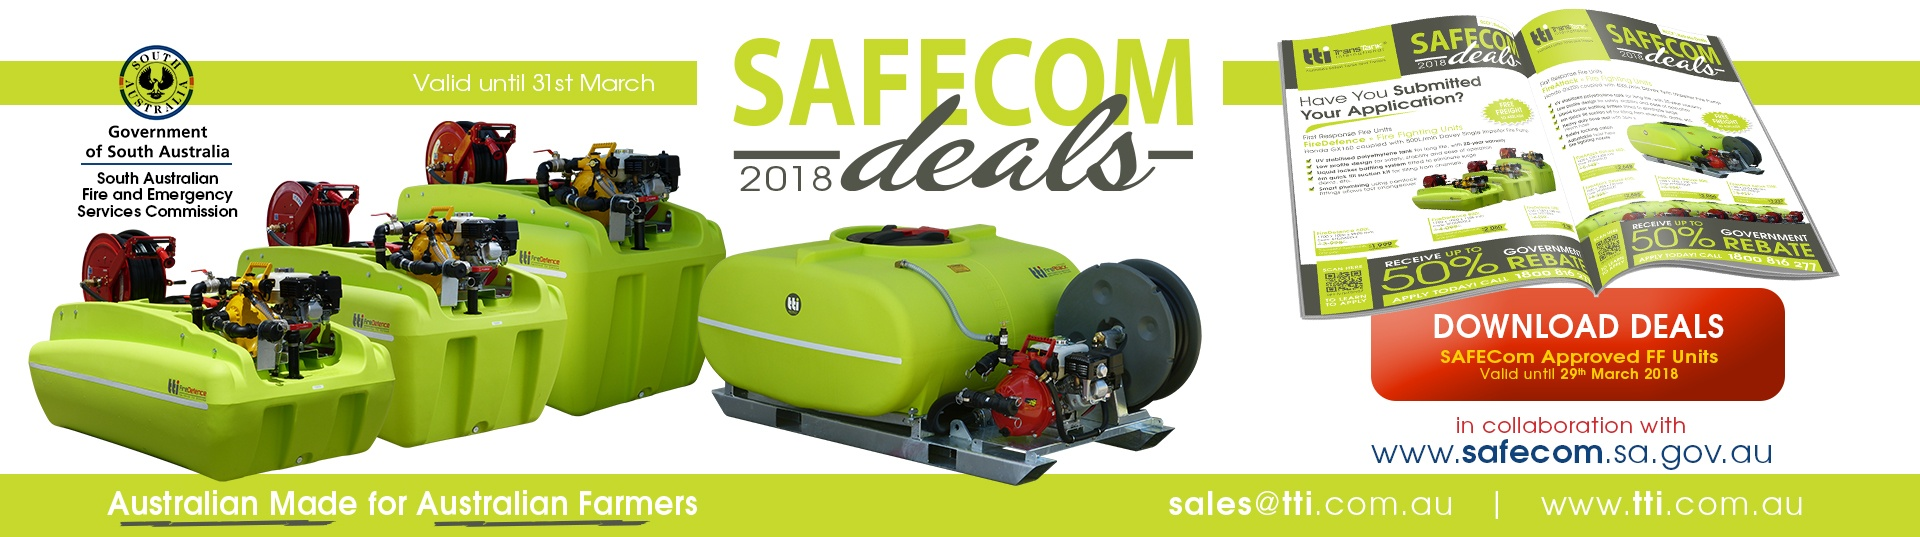 safecom 2018 tti sales catalogue fire fighting equipment tank tanks trailers australia autumn action deals 2018